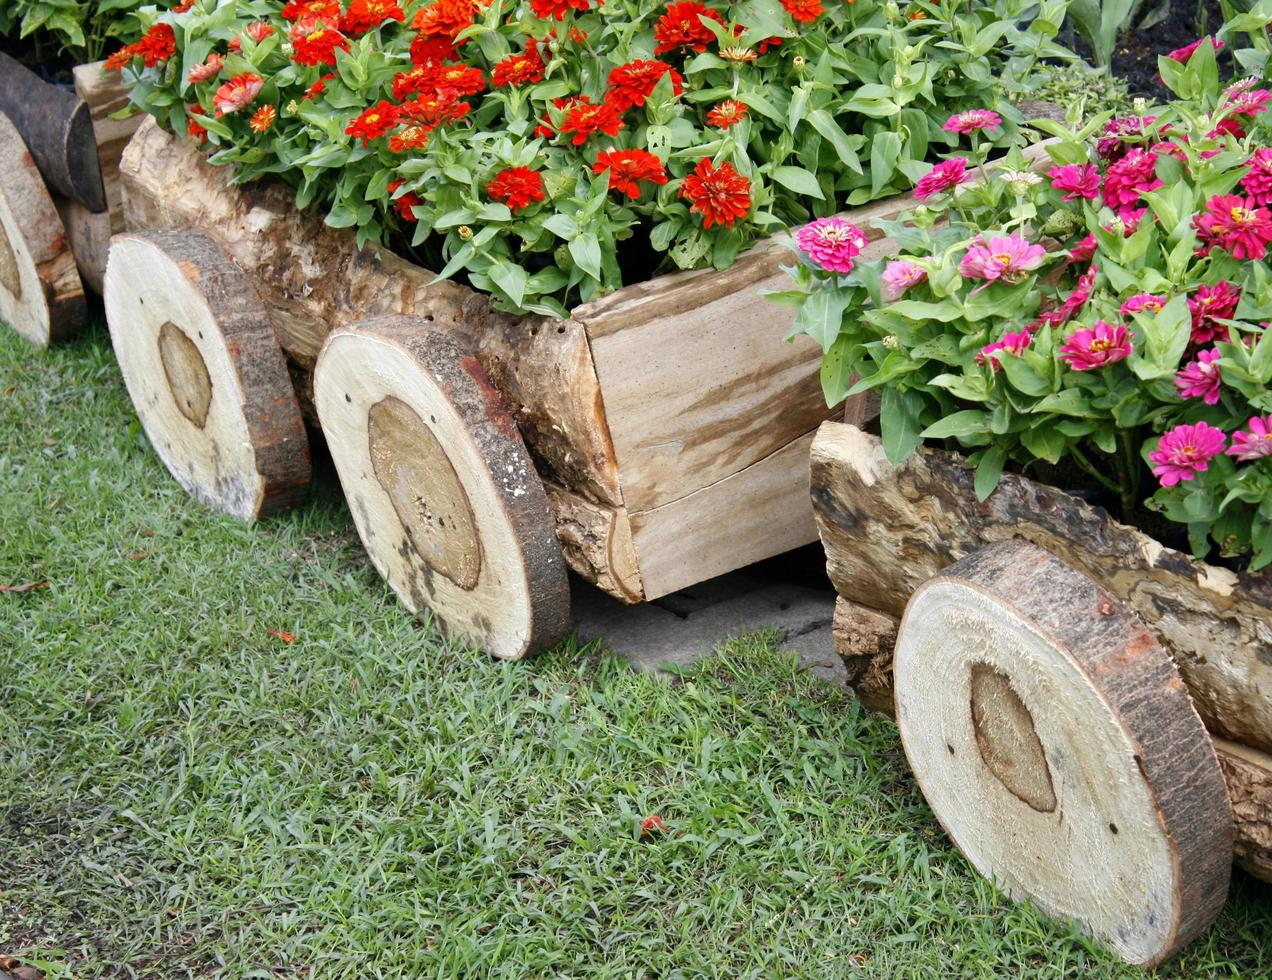 Flowers in pots in wooden box on background of garden photo